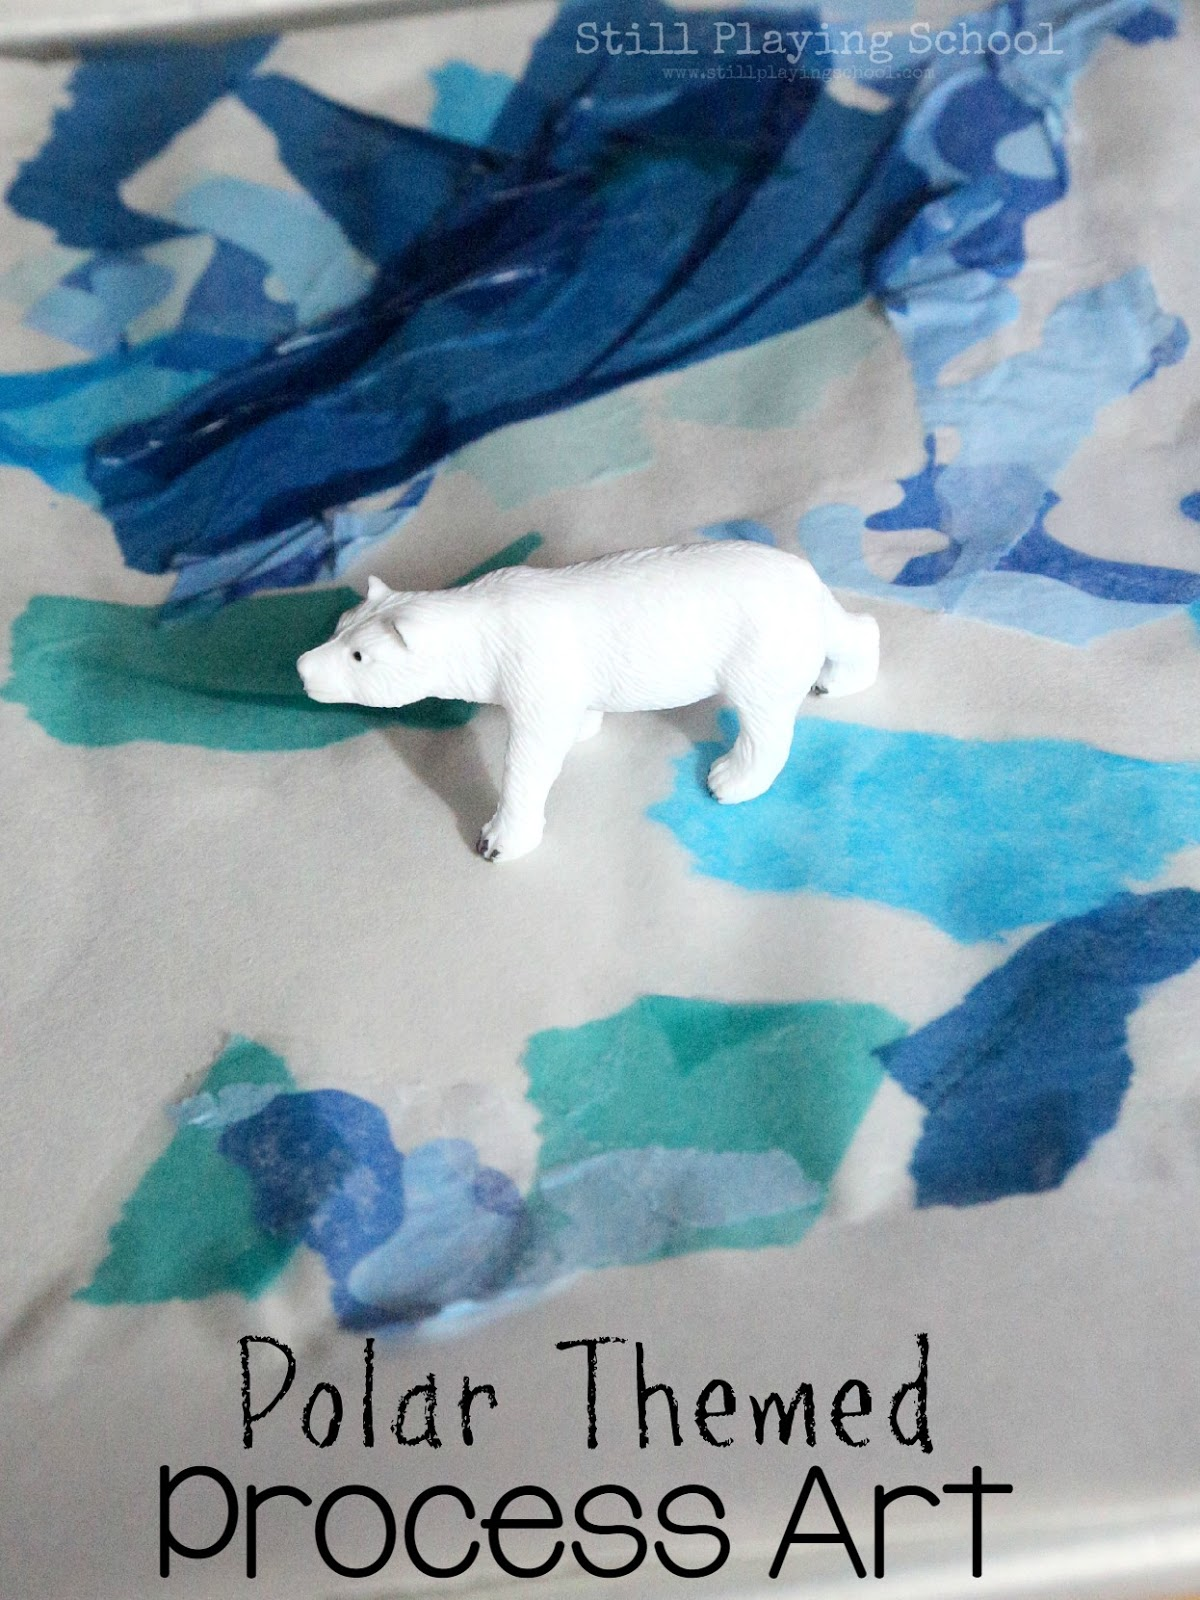 Polar Themed Process Art For Kids